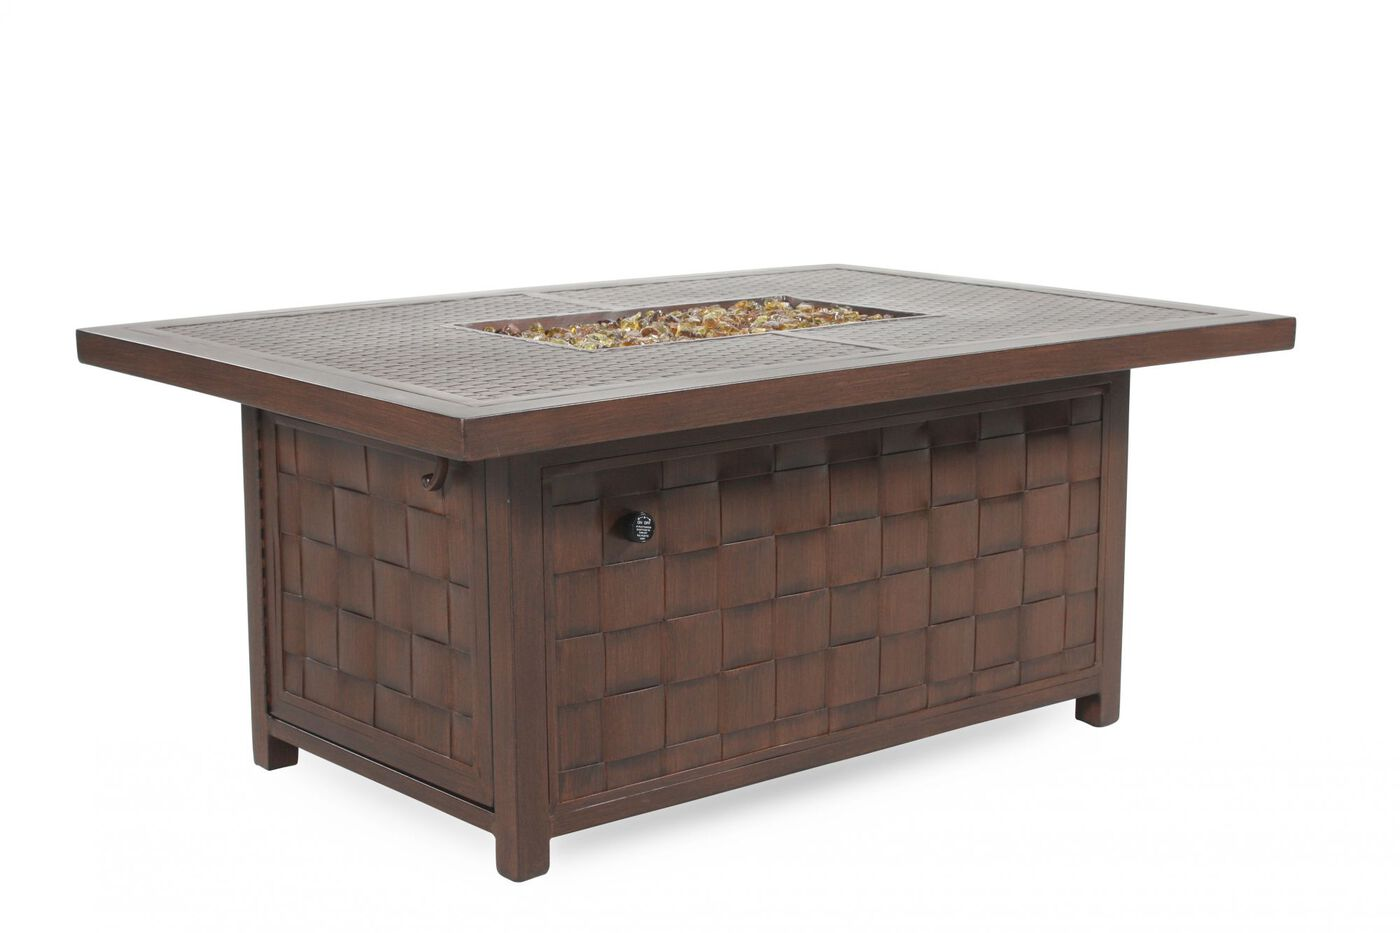 Mathis Brothers Patio Furniture castelle spanish bay patio fire pit coffee table | mathis brothers